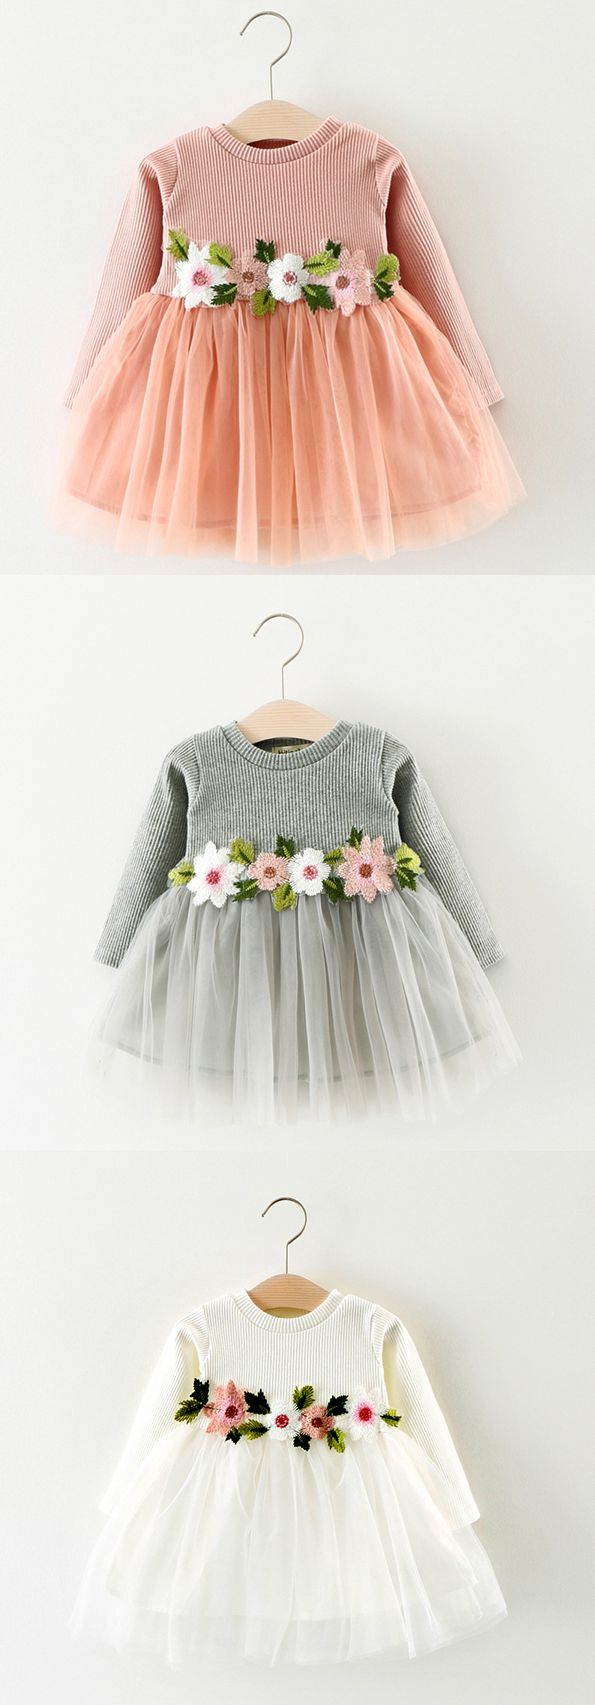 So Cute!Must Have One for My Baby.Right?Don't Miss lots of Kids Clothes on Newchic.Shop with Me Today! #KidsFashion